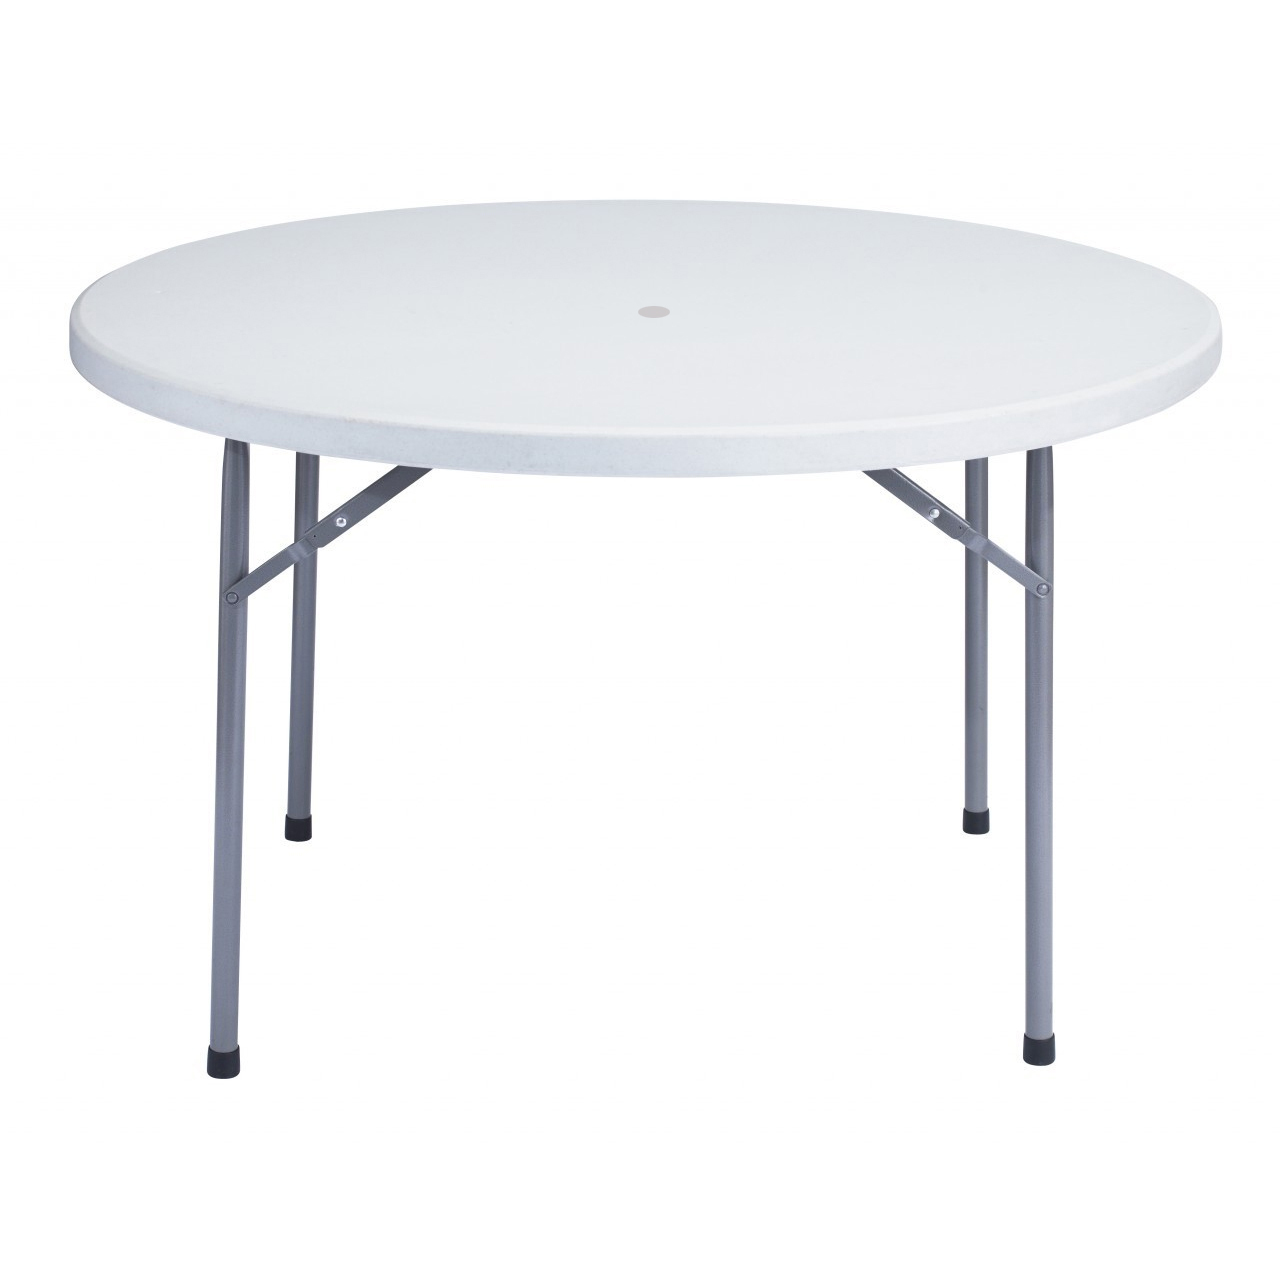 4 foot adjustable height folding table - Durable Eco Friendly Design